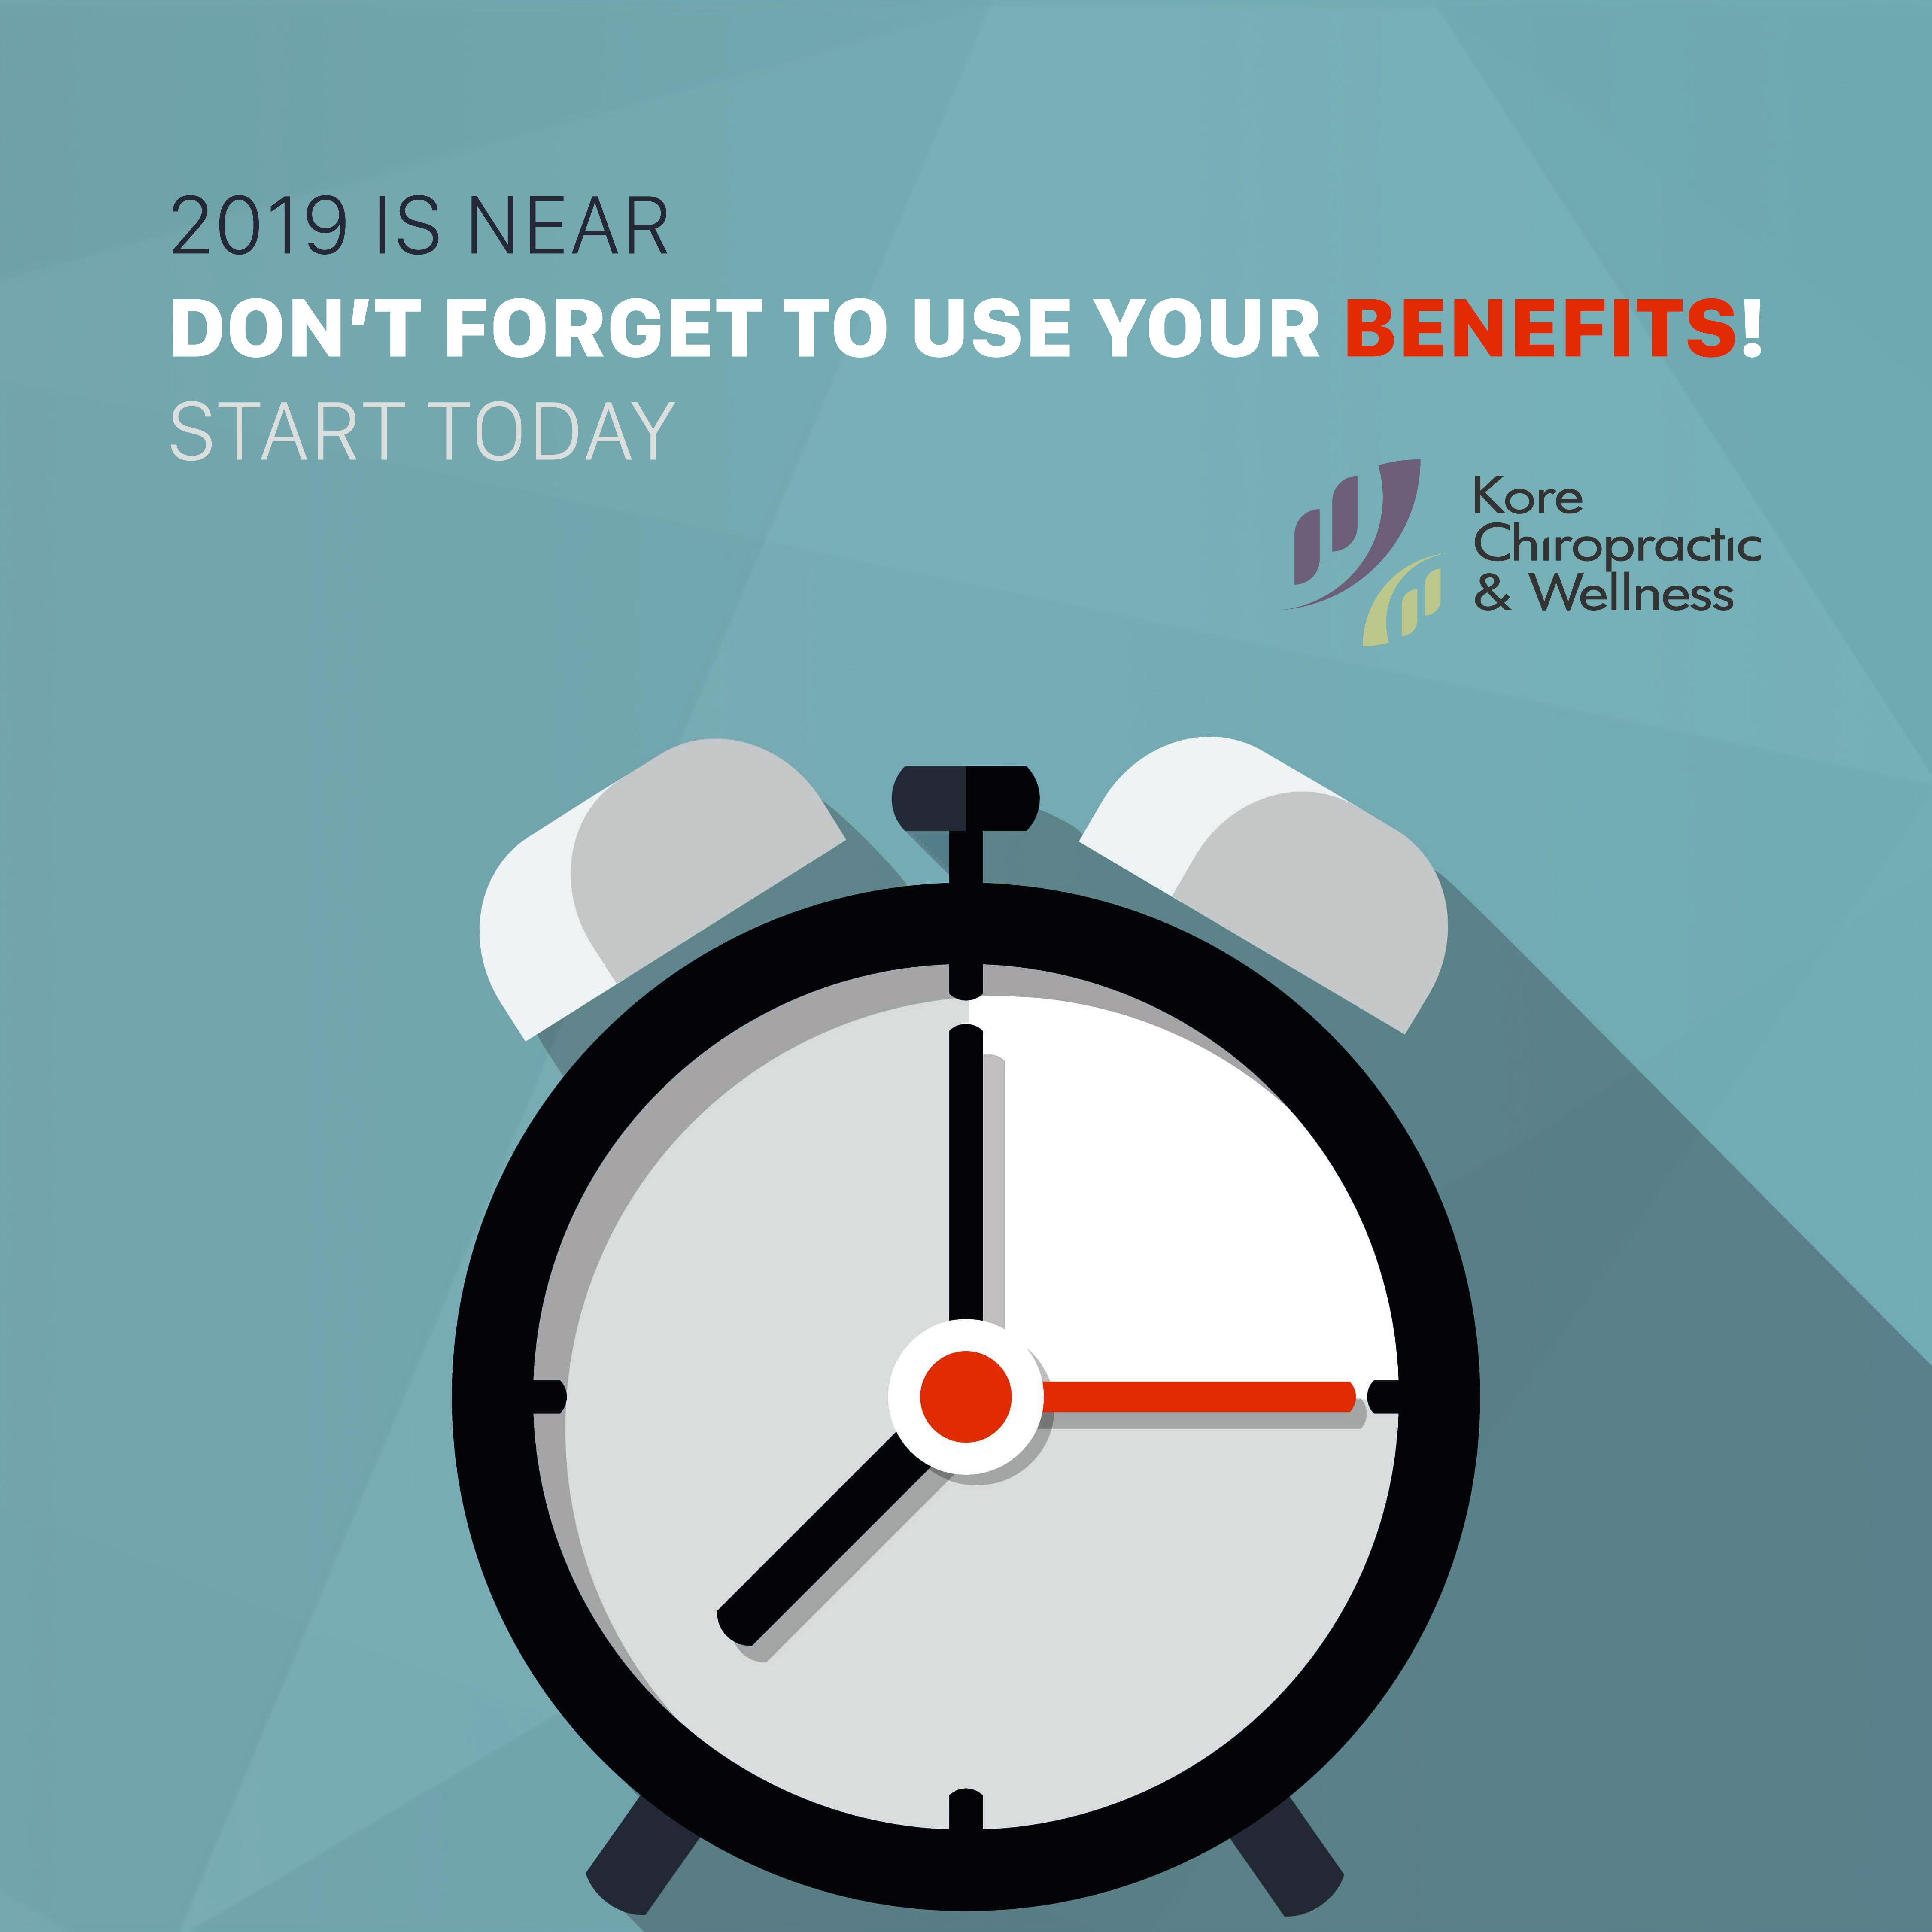 Many Insurance Plans Run On A Calendar Year There Are Some Exceptions But As A Rule The Majority Of I Chiropractic Wellness Chiropractic Physiotherapy